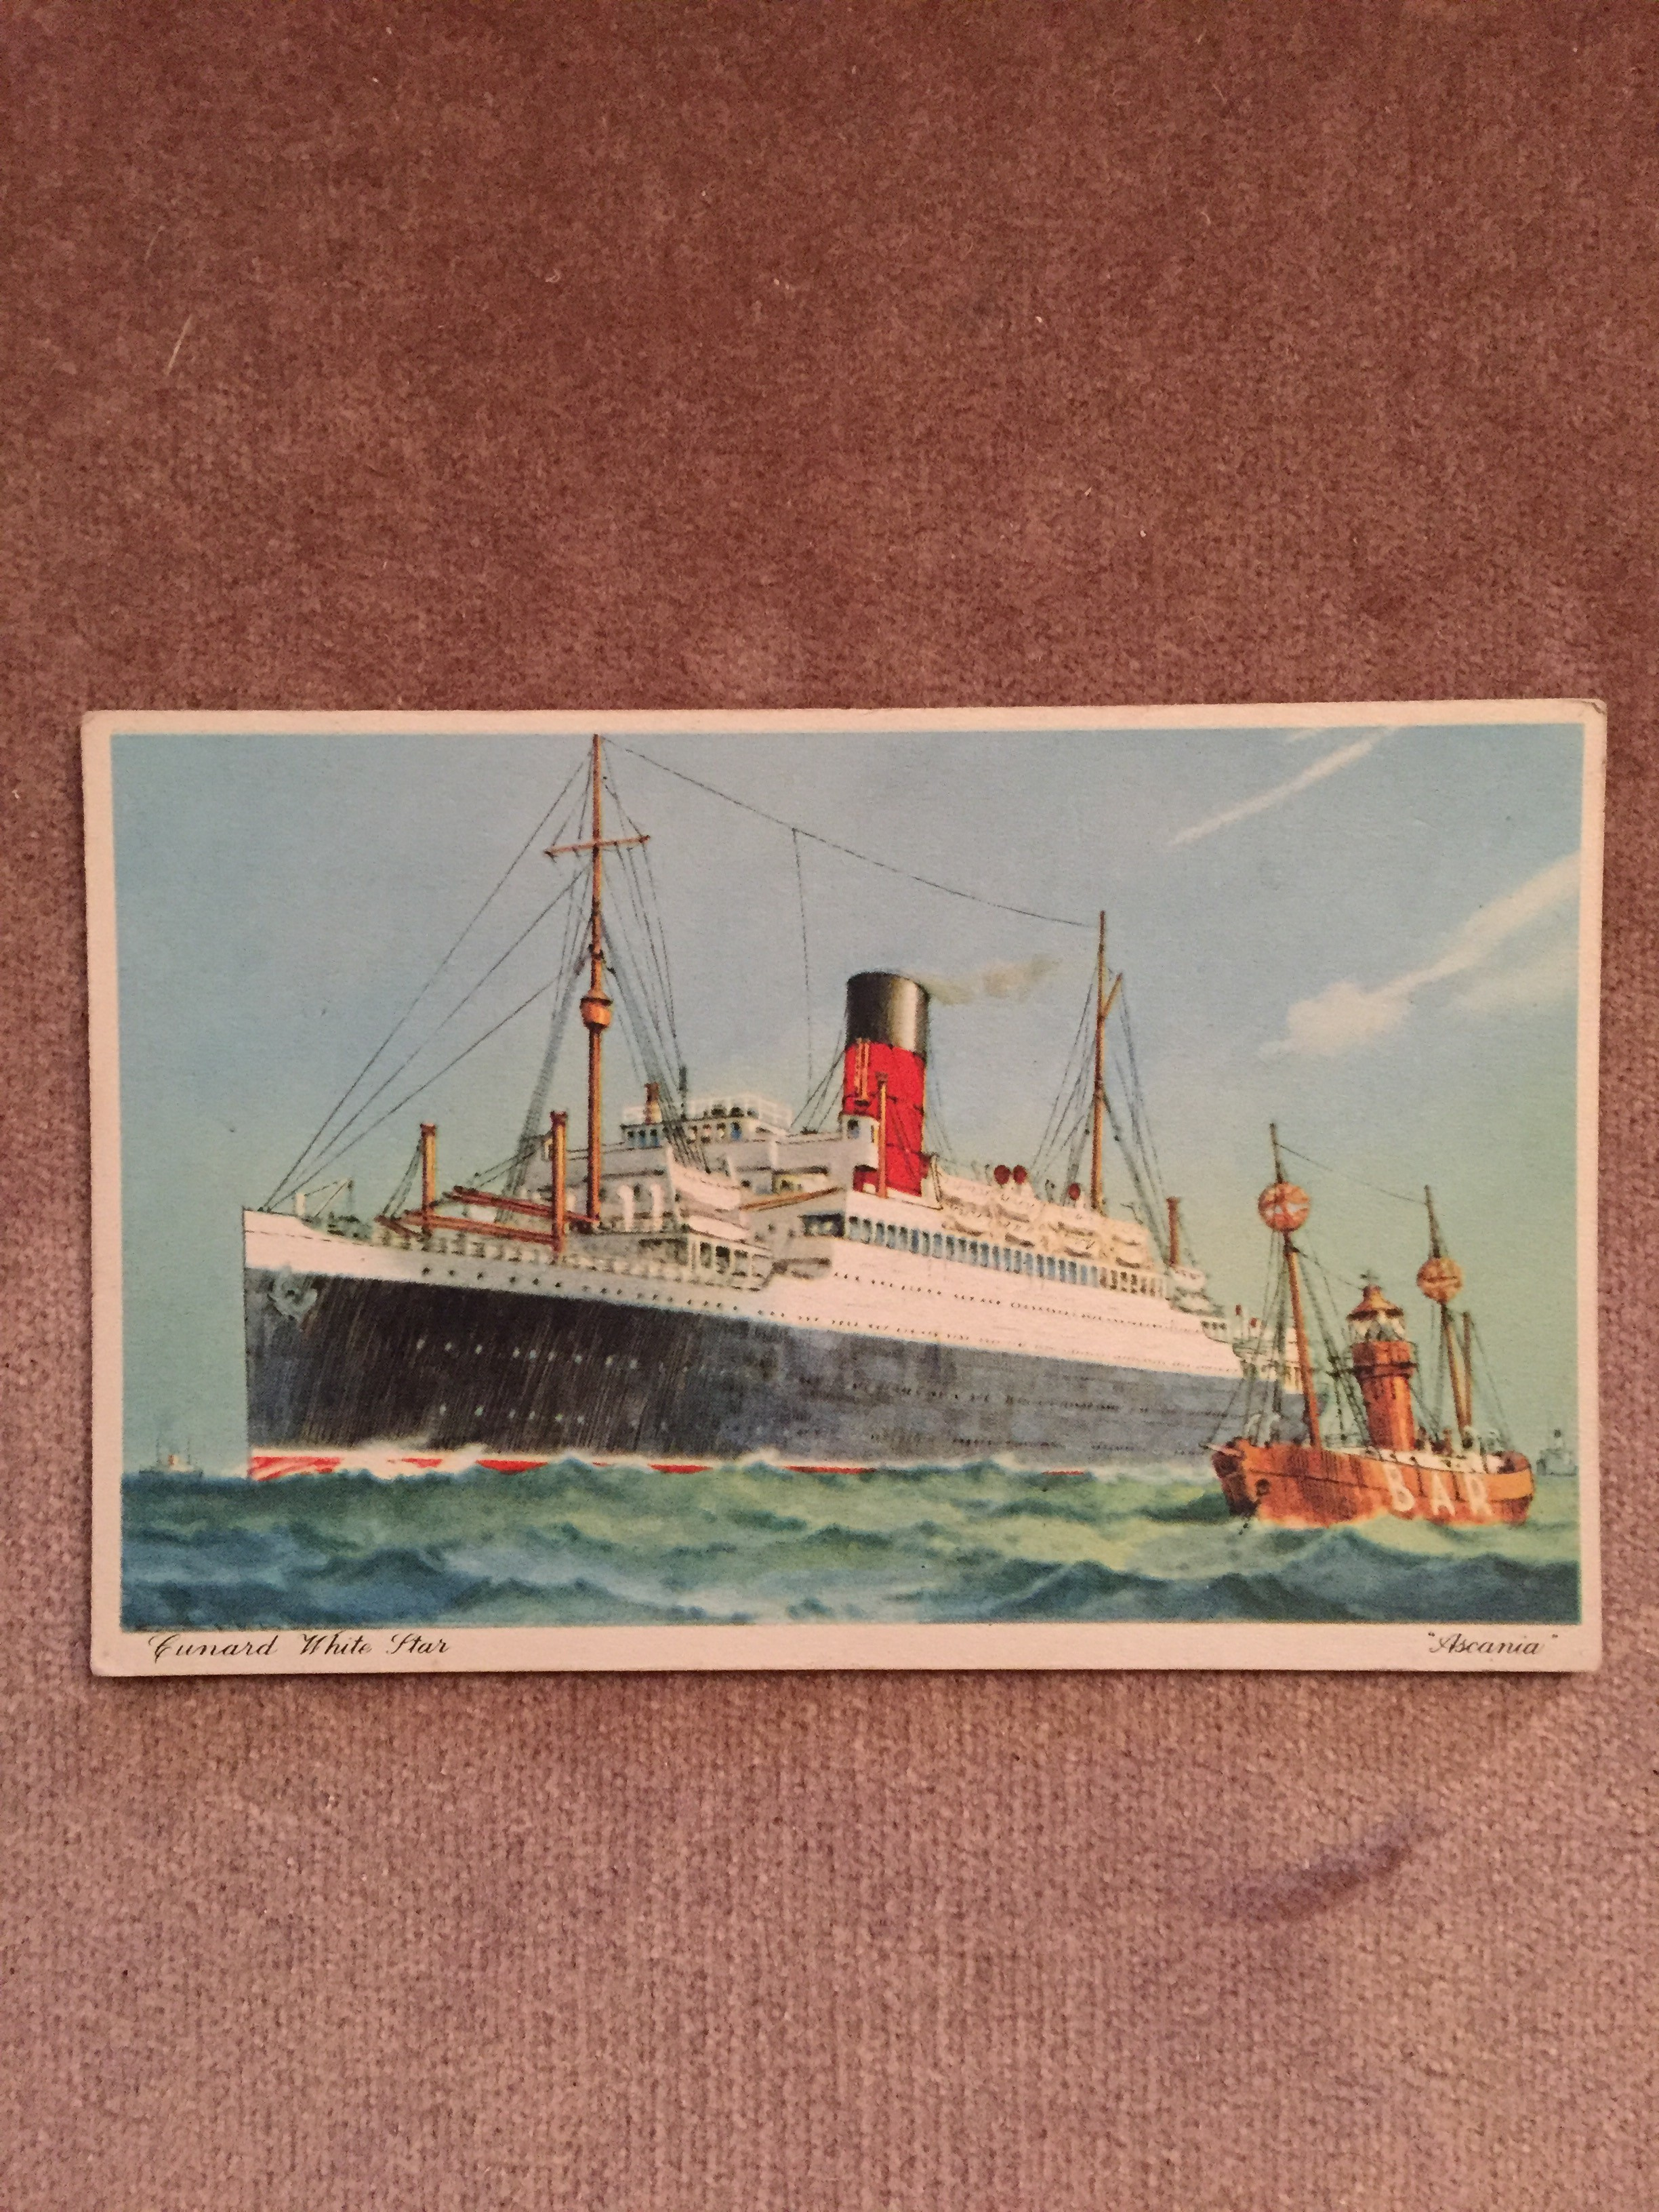 UNUSED COLOUR POSTCARD FROM THE OLD CUNARD WHITE STAR LINE VESSEL THE RMS ASCANIA